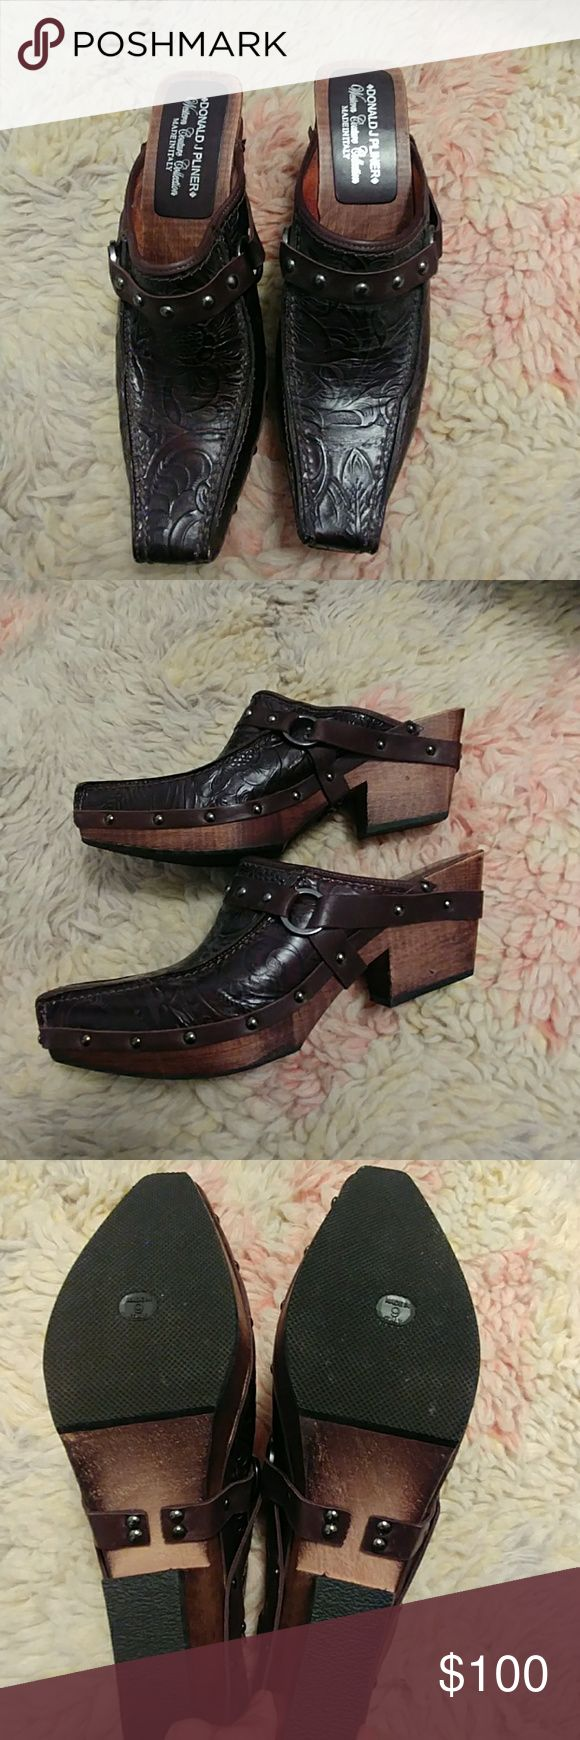 Donald J Oliver Western Couture Mules Never Worn Donald J Pliner Wester Couture Collection Brown Mules. Chocolate Brown Leather and Wood Design. Donald J. Pliner Shoes Mules & Clogs